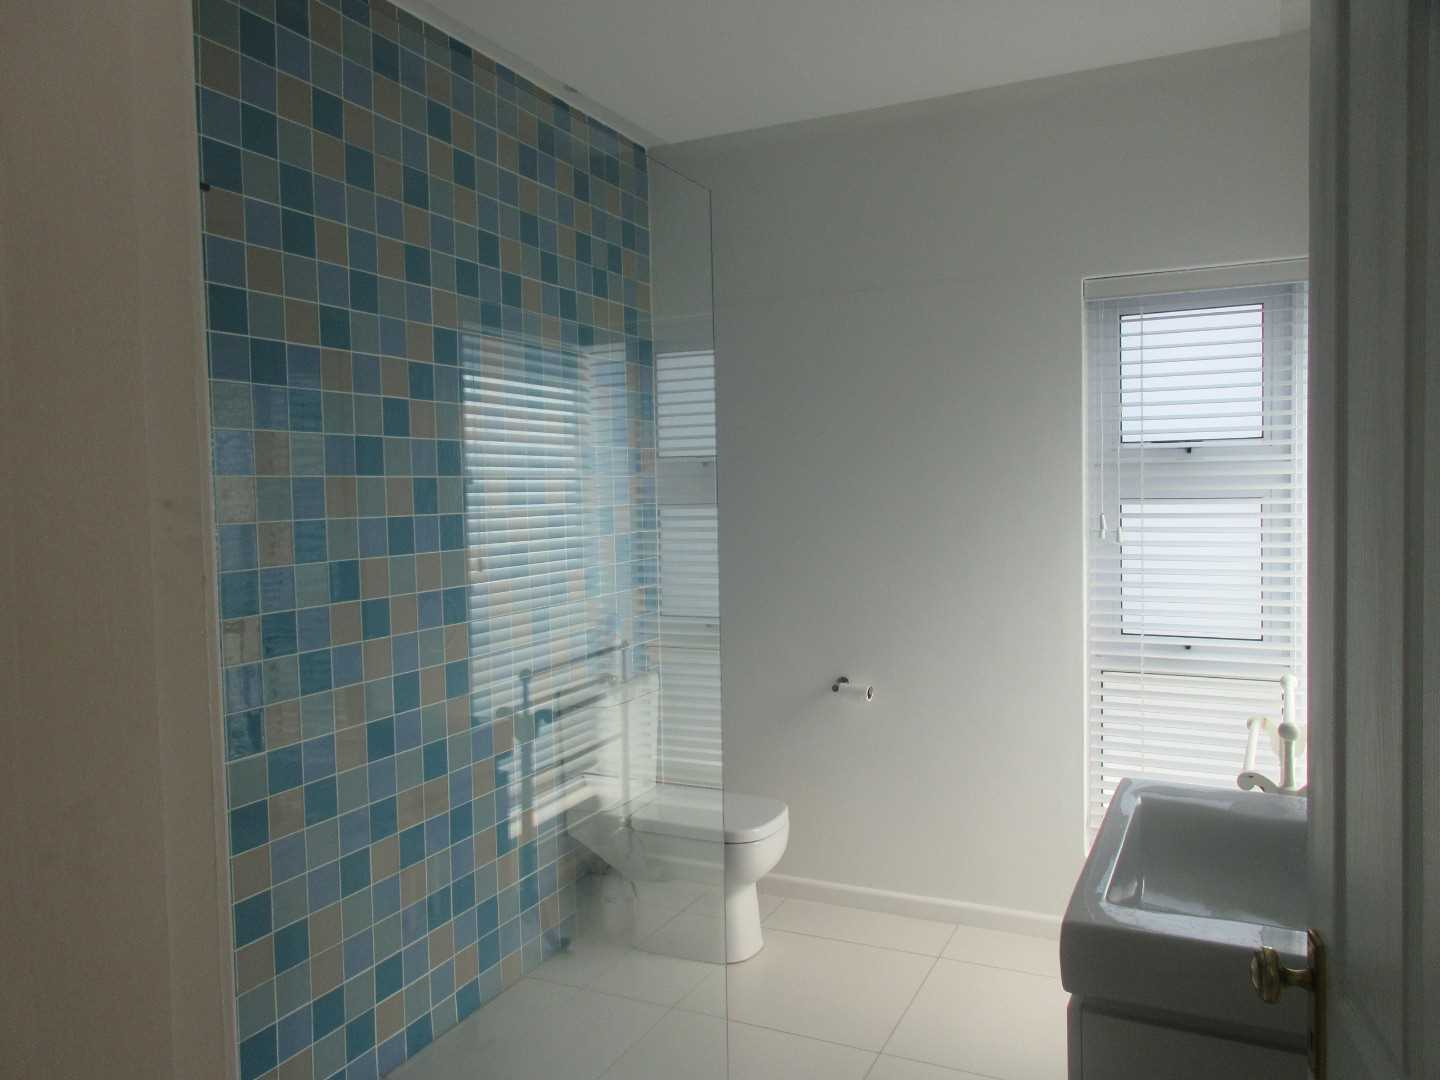 Children's room en-suite bathroom with bath and shower